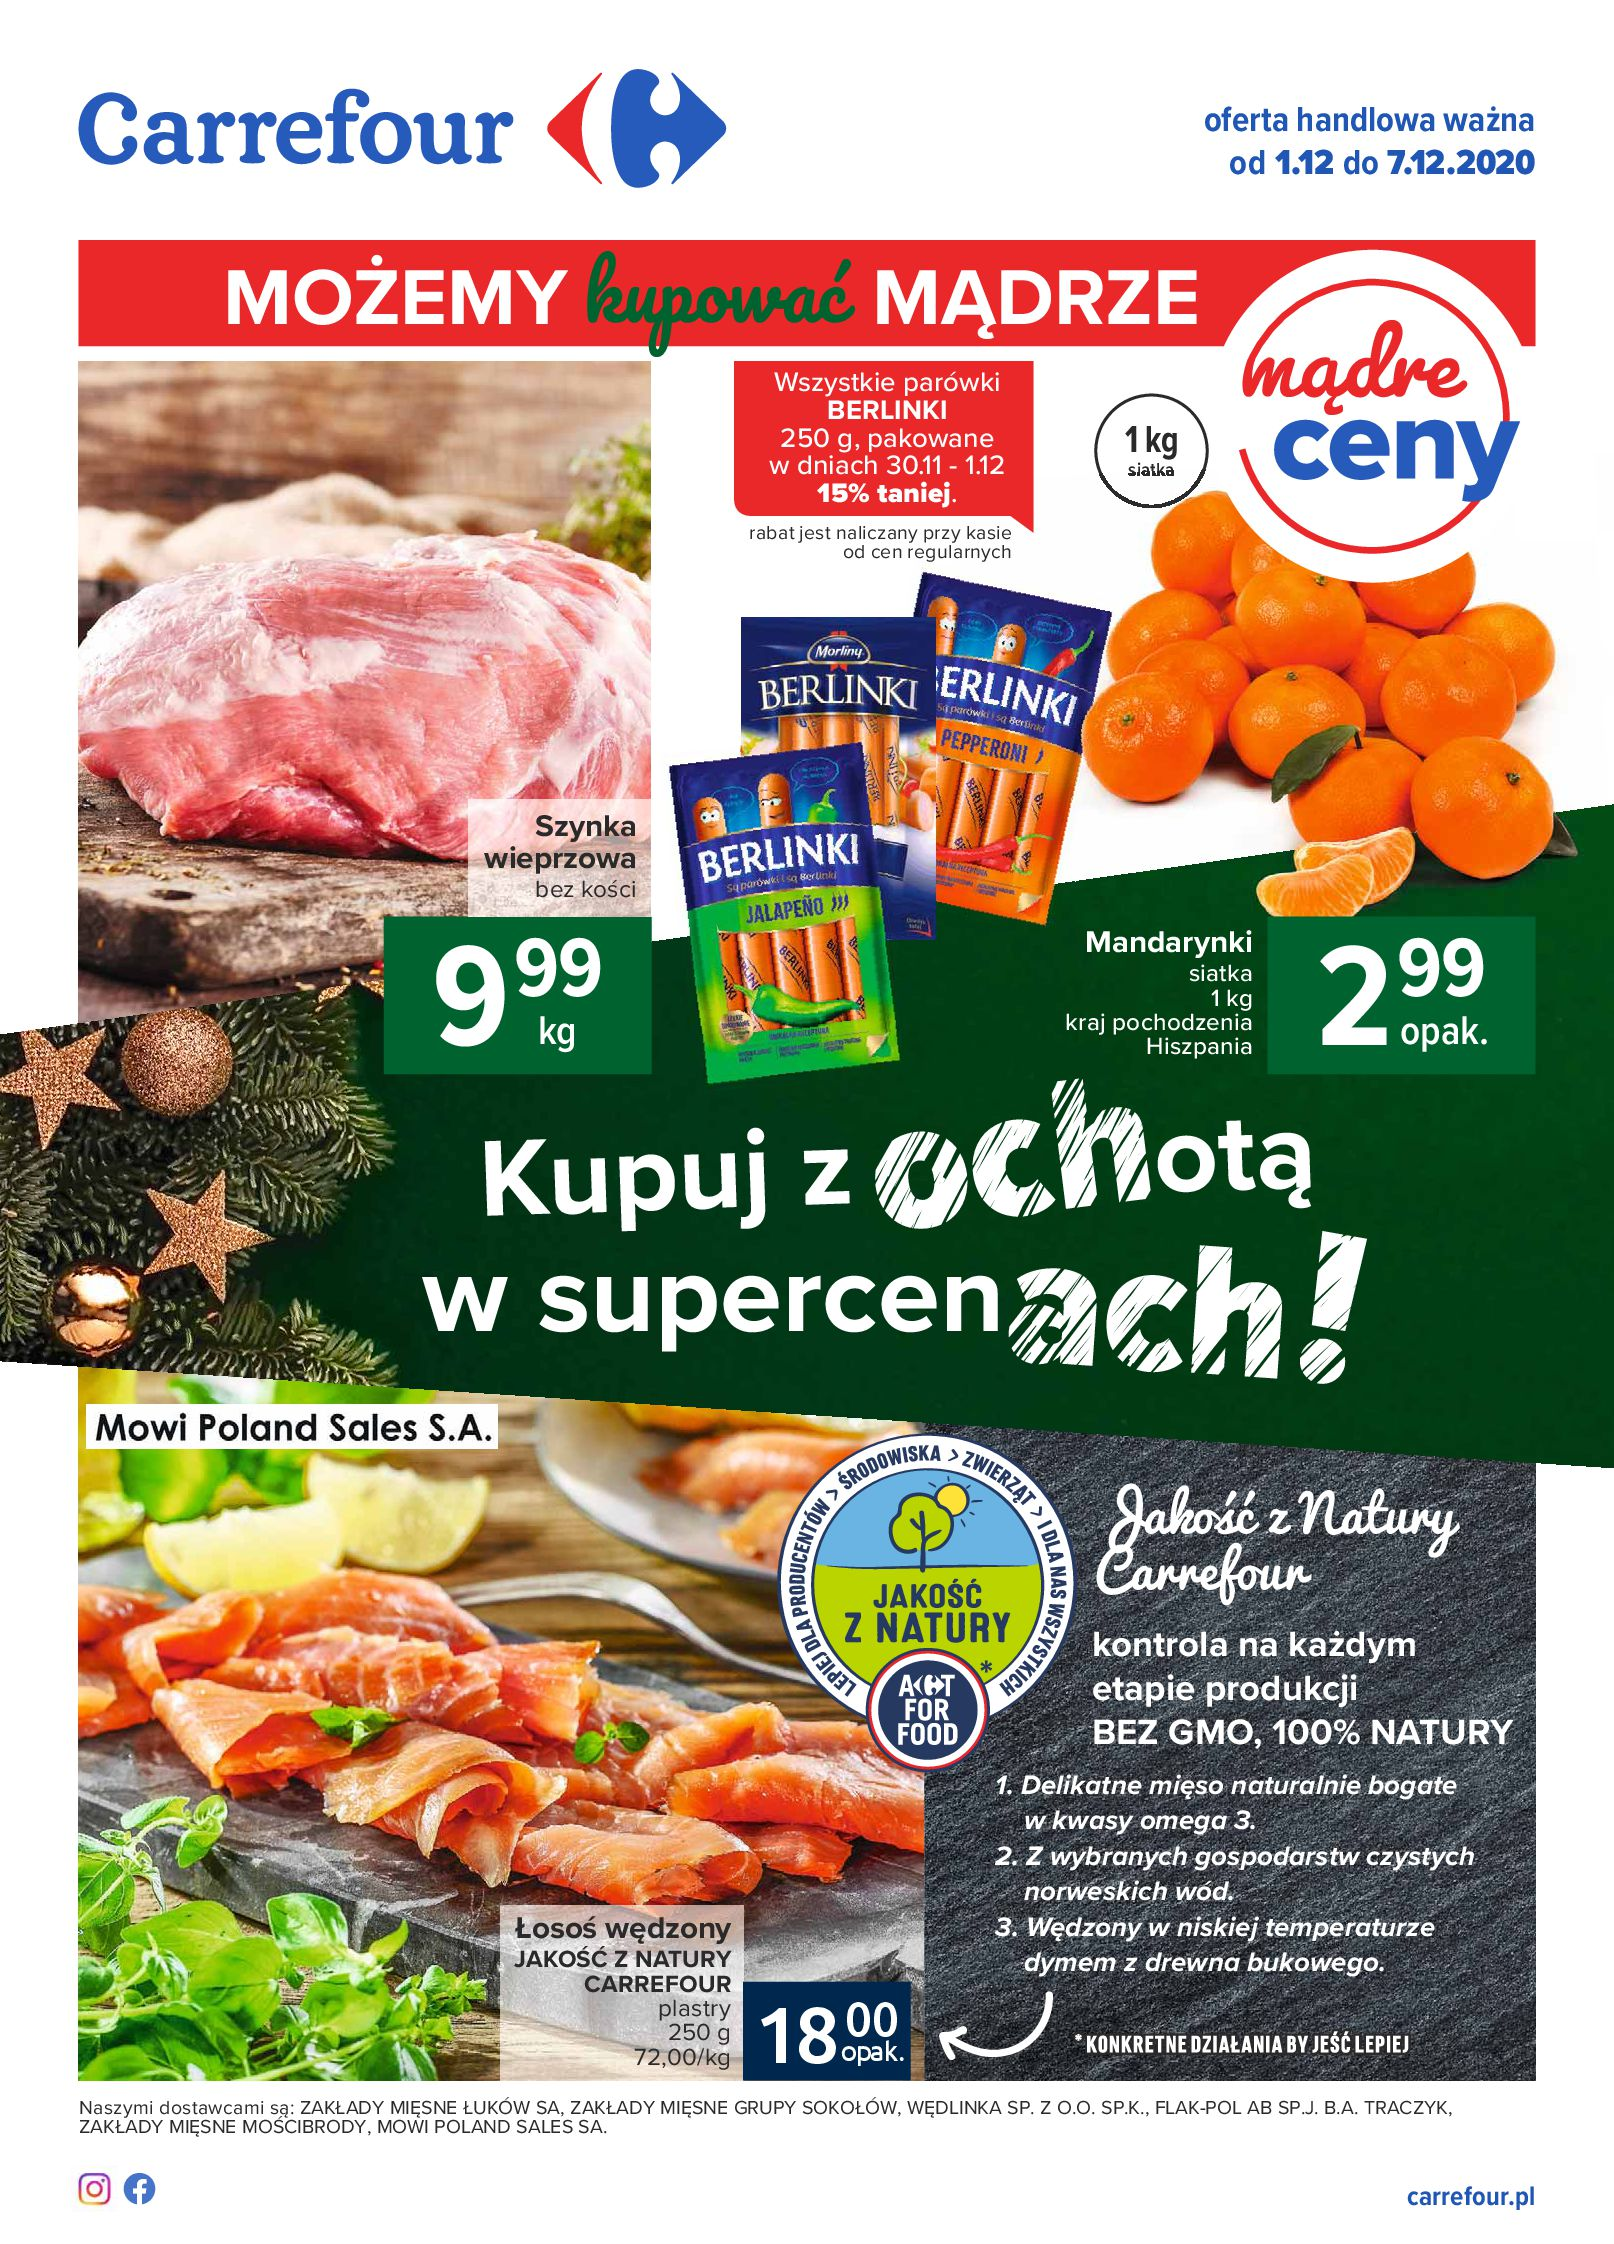 Carrefour:  Gazetka Carrefour od 01.12 30.11.2020